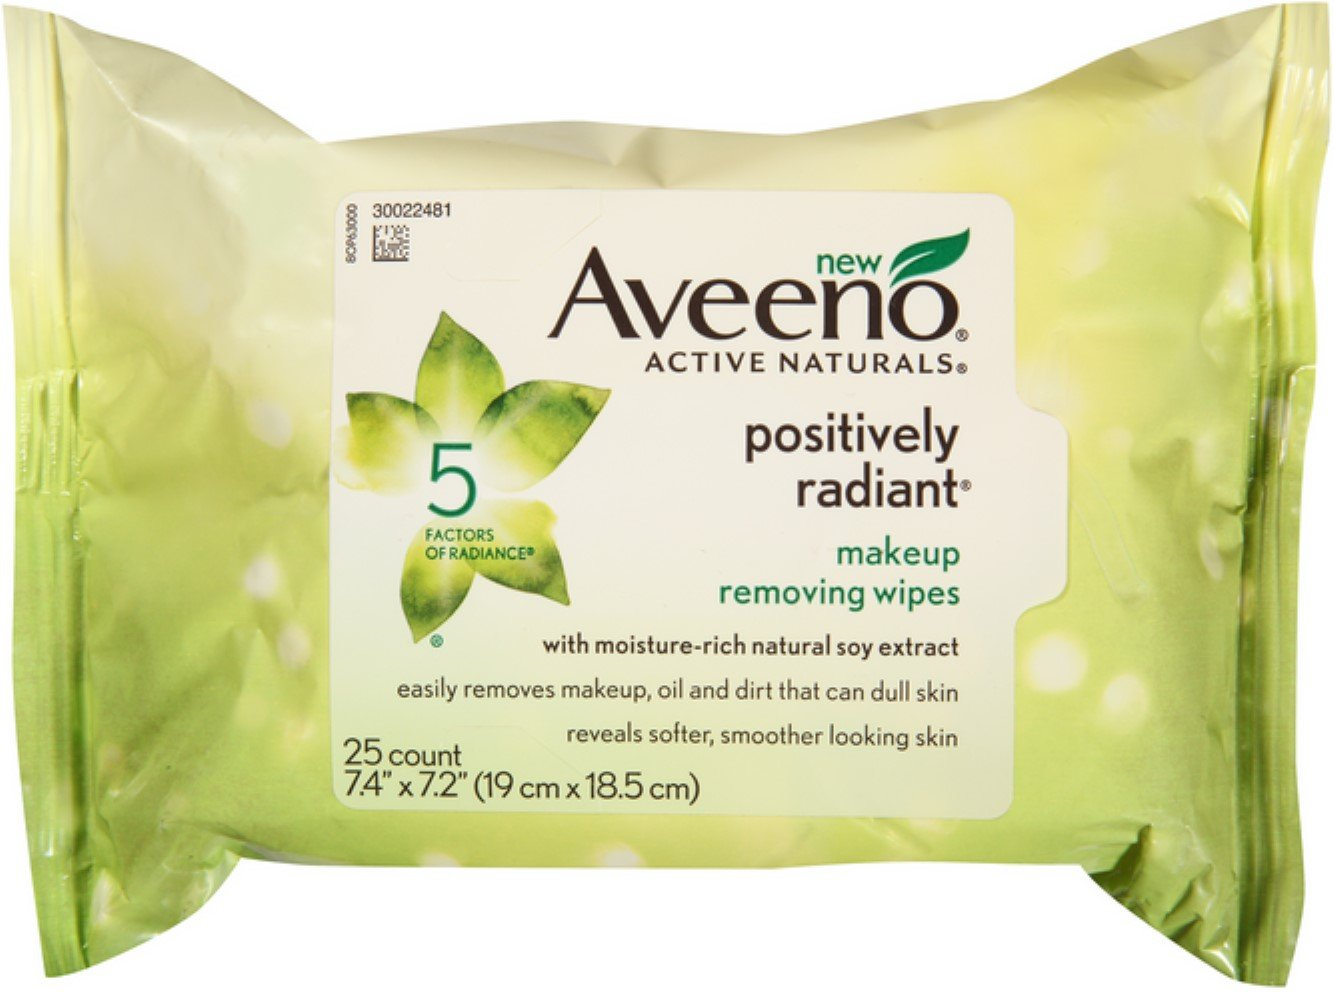 AVEENO Active Naturals Positively Radiant Makeup Removing Wipes, 25 ea (Pack of 3)